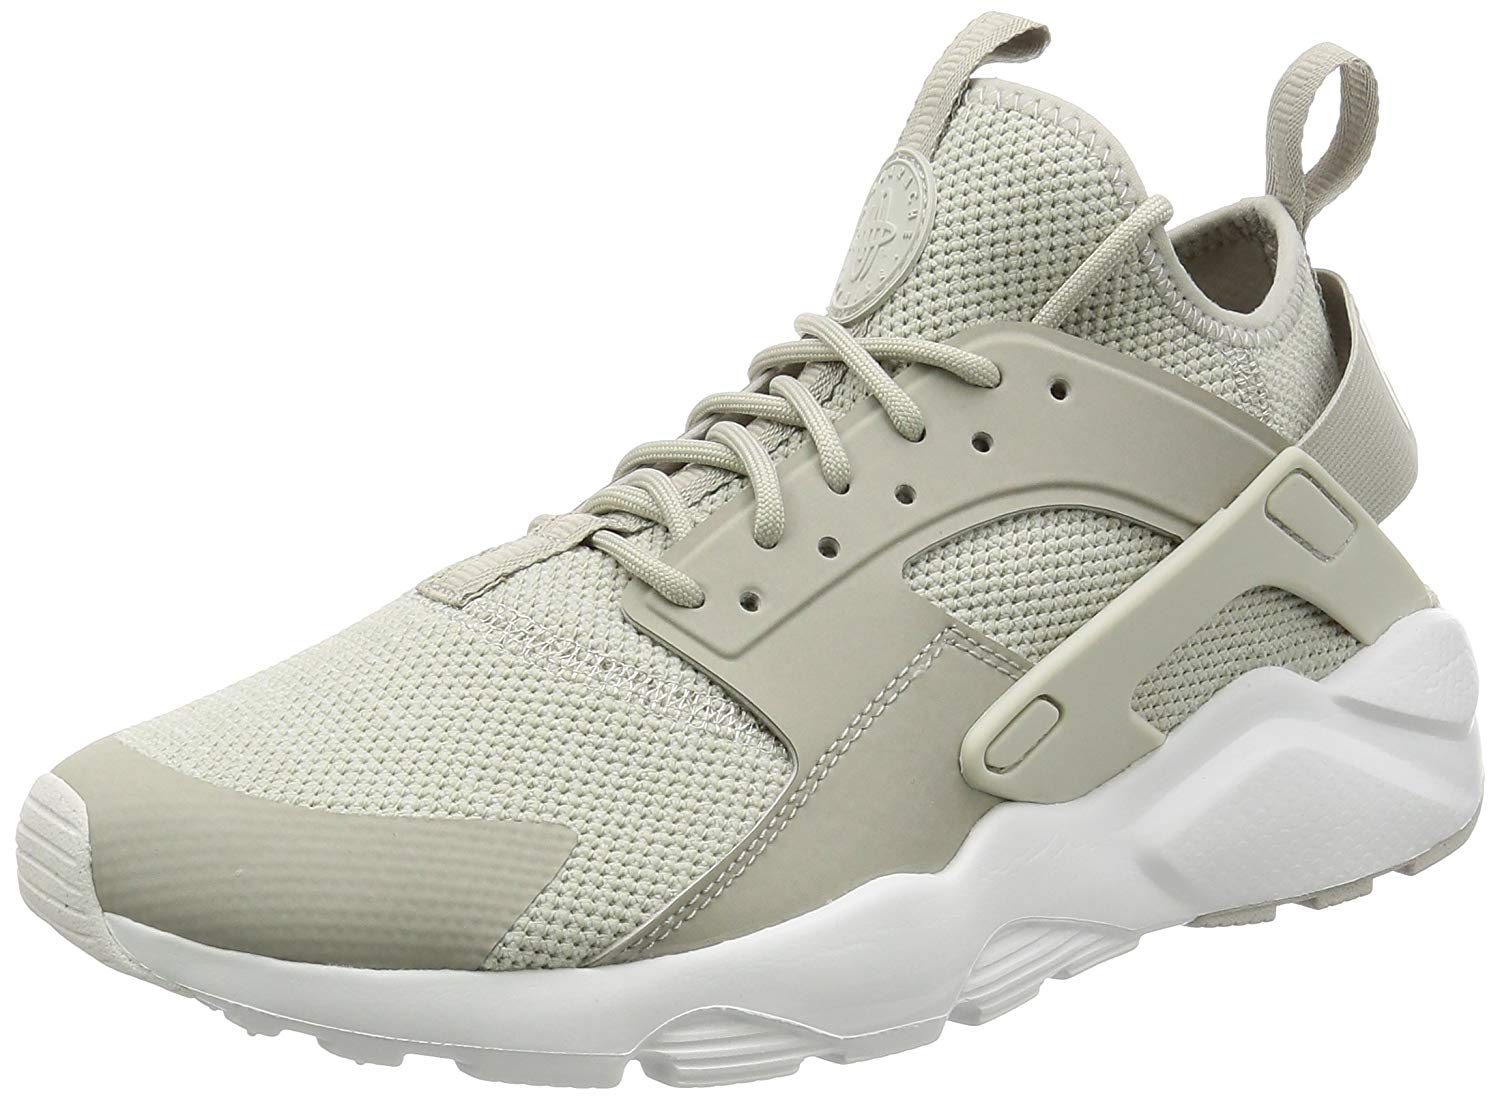 separation shoes c39ea 361a0 Nike Mens Air Huarache Run Ultra BR Low Top Lace Up Running, Grey, Size  10.0 Cvc